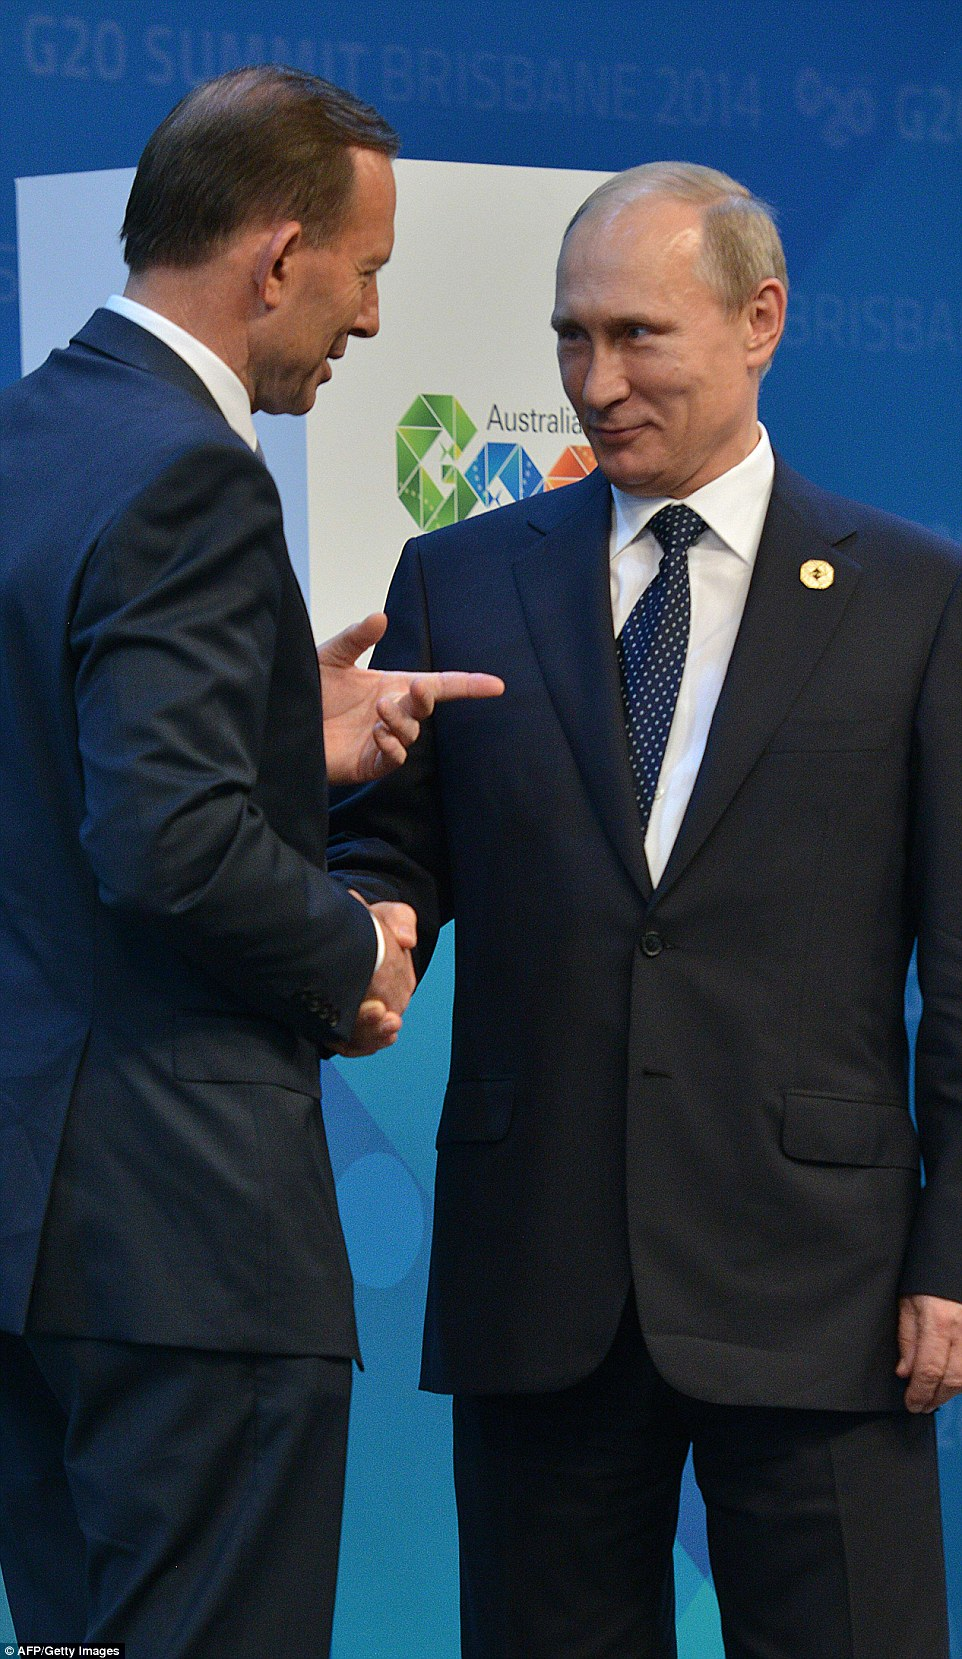 Australian Prime Minister Tony Abbott said he would 'shirtfront' the Russian President